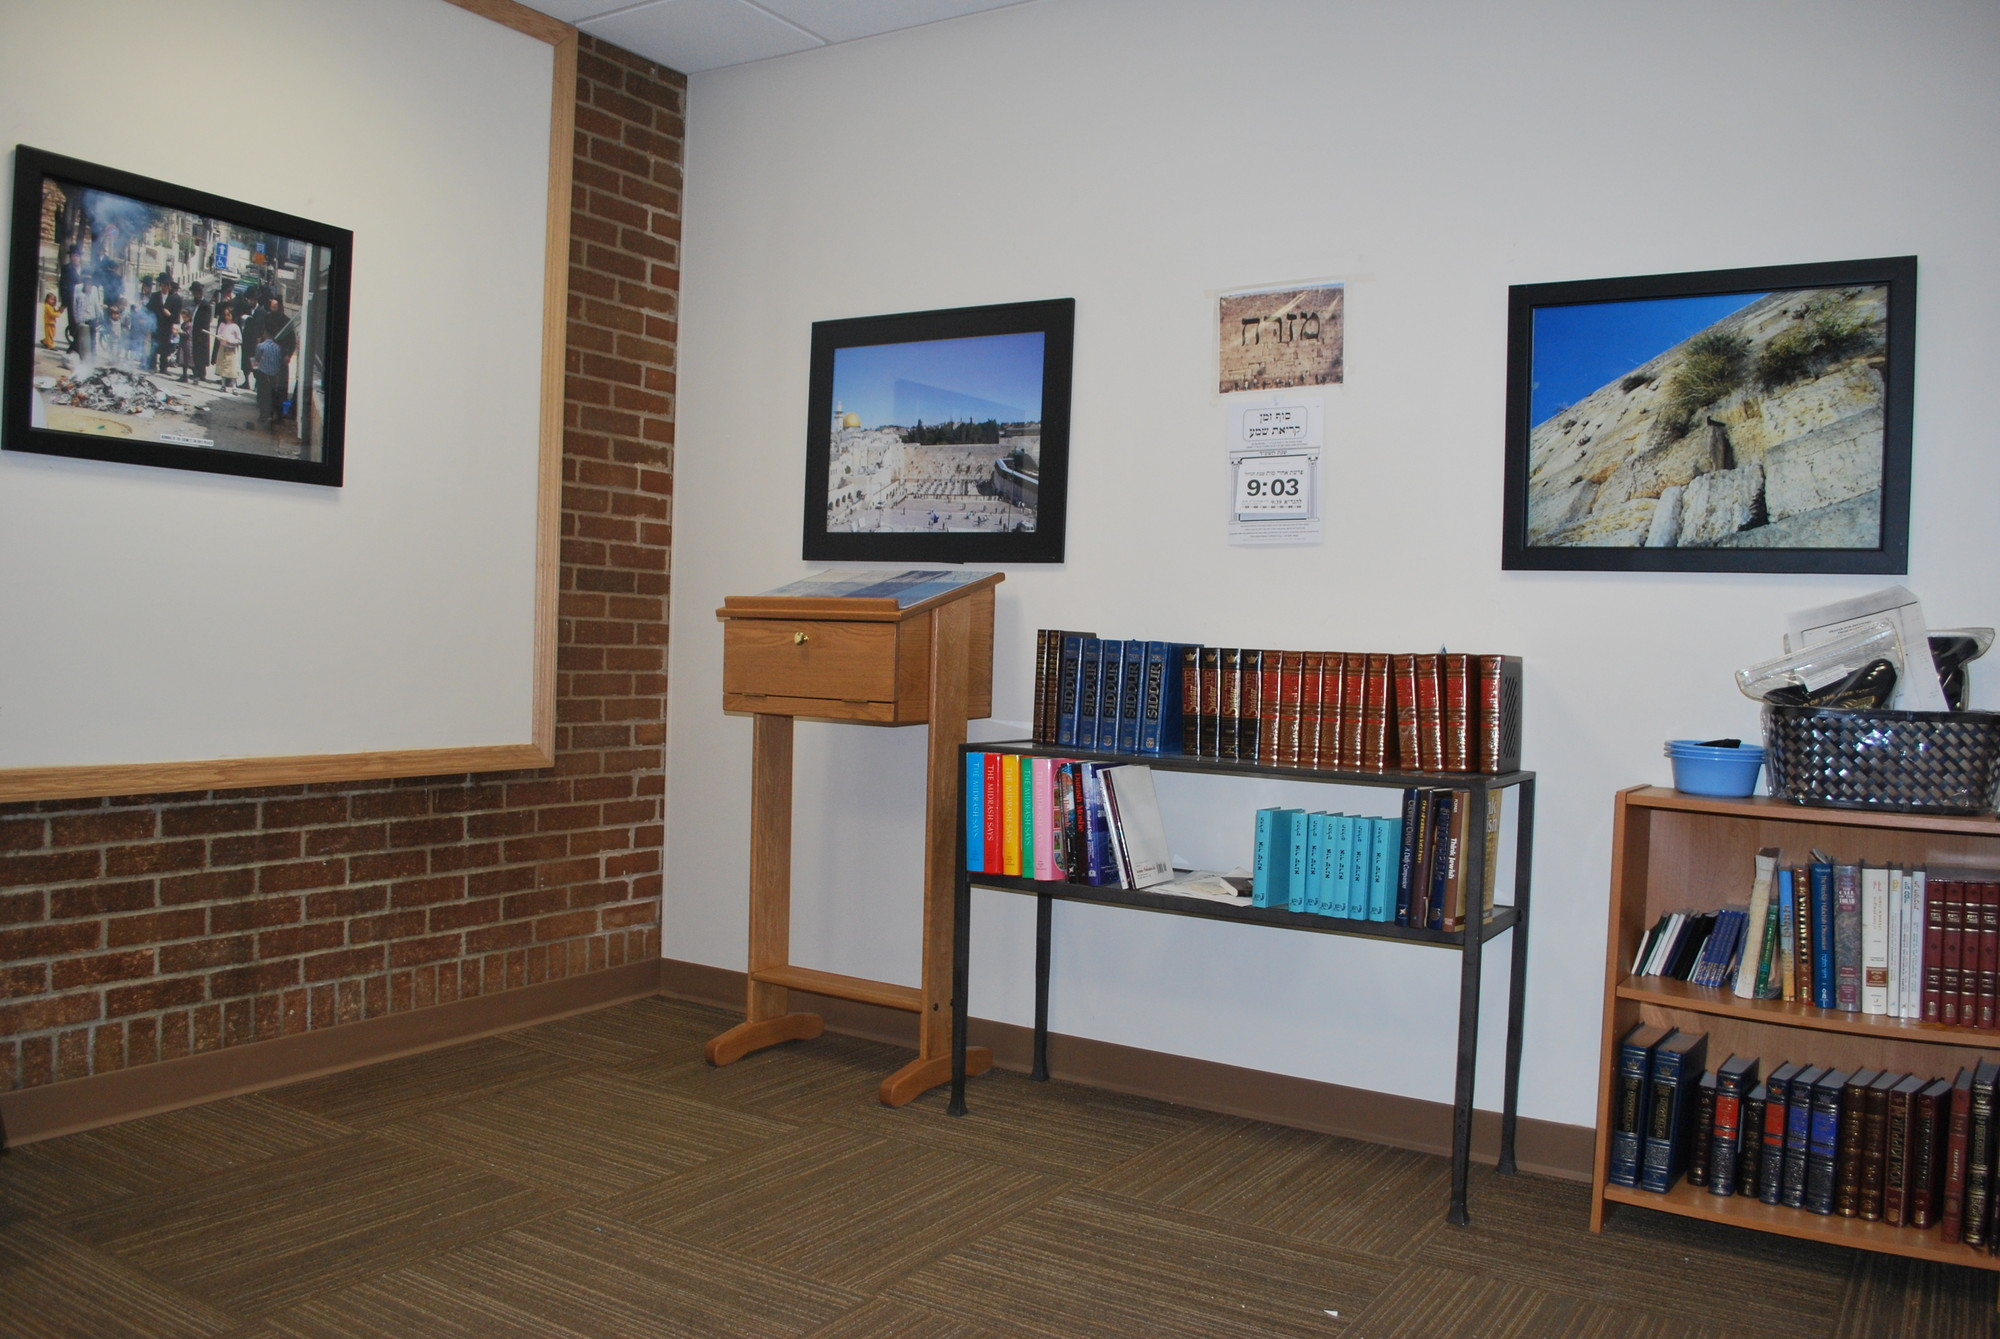 The Orthodox Jewish chapel at Mercy is stocked with prayer books and services are conducted by Rabbi Dr. Aaron Glatt.